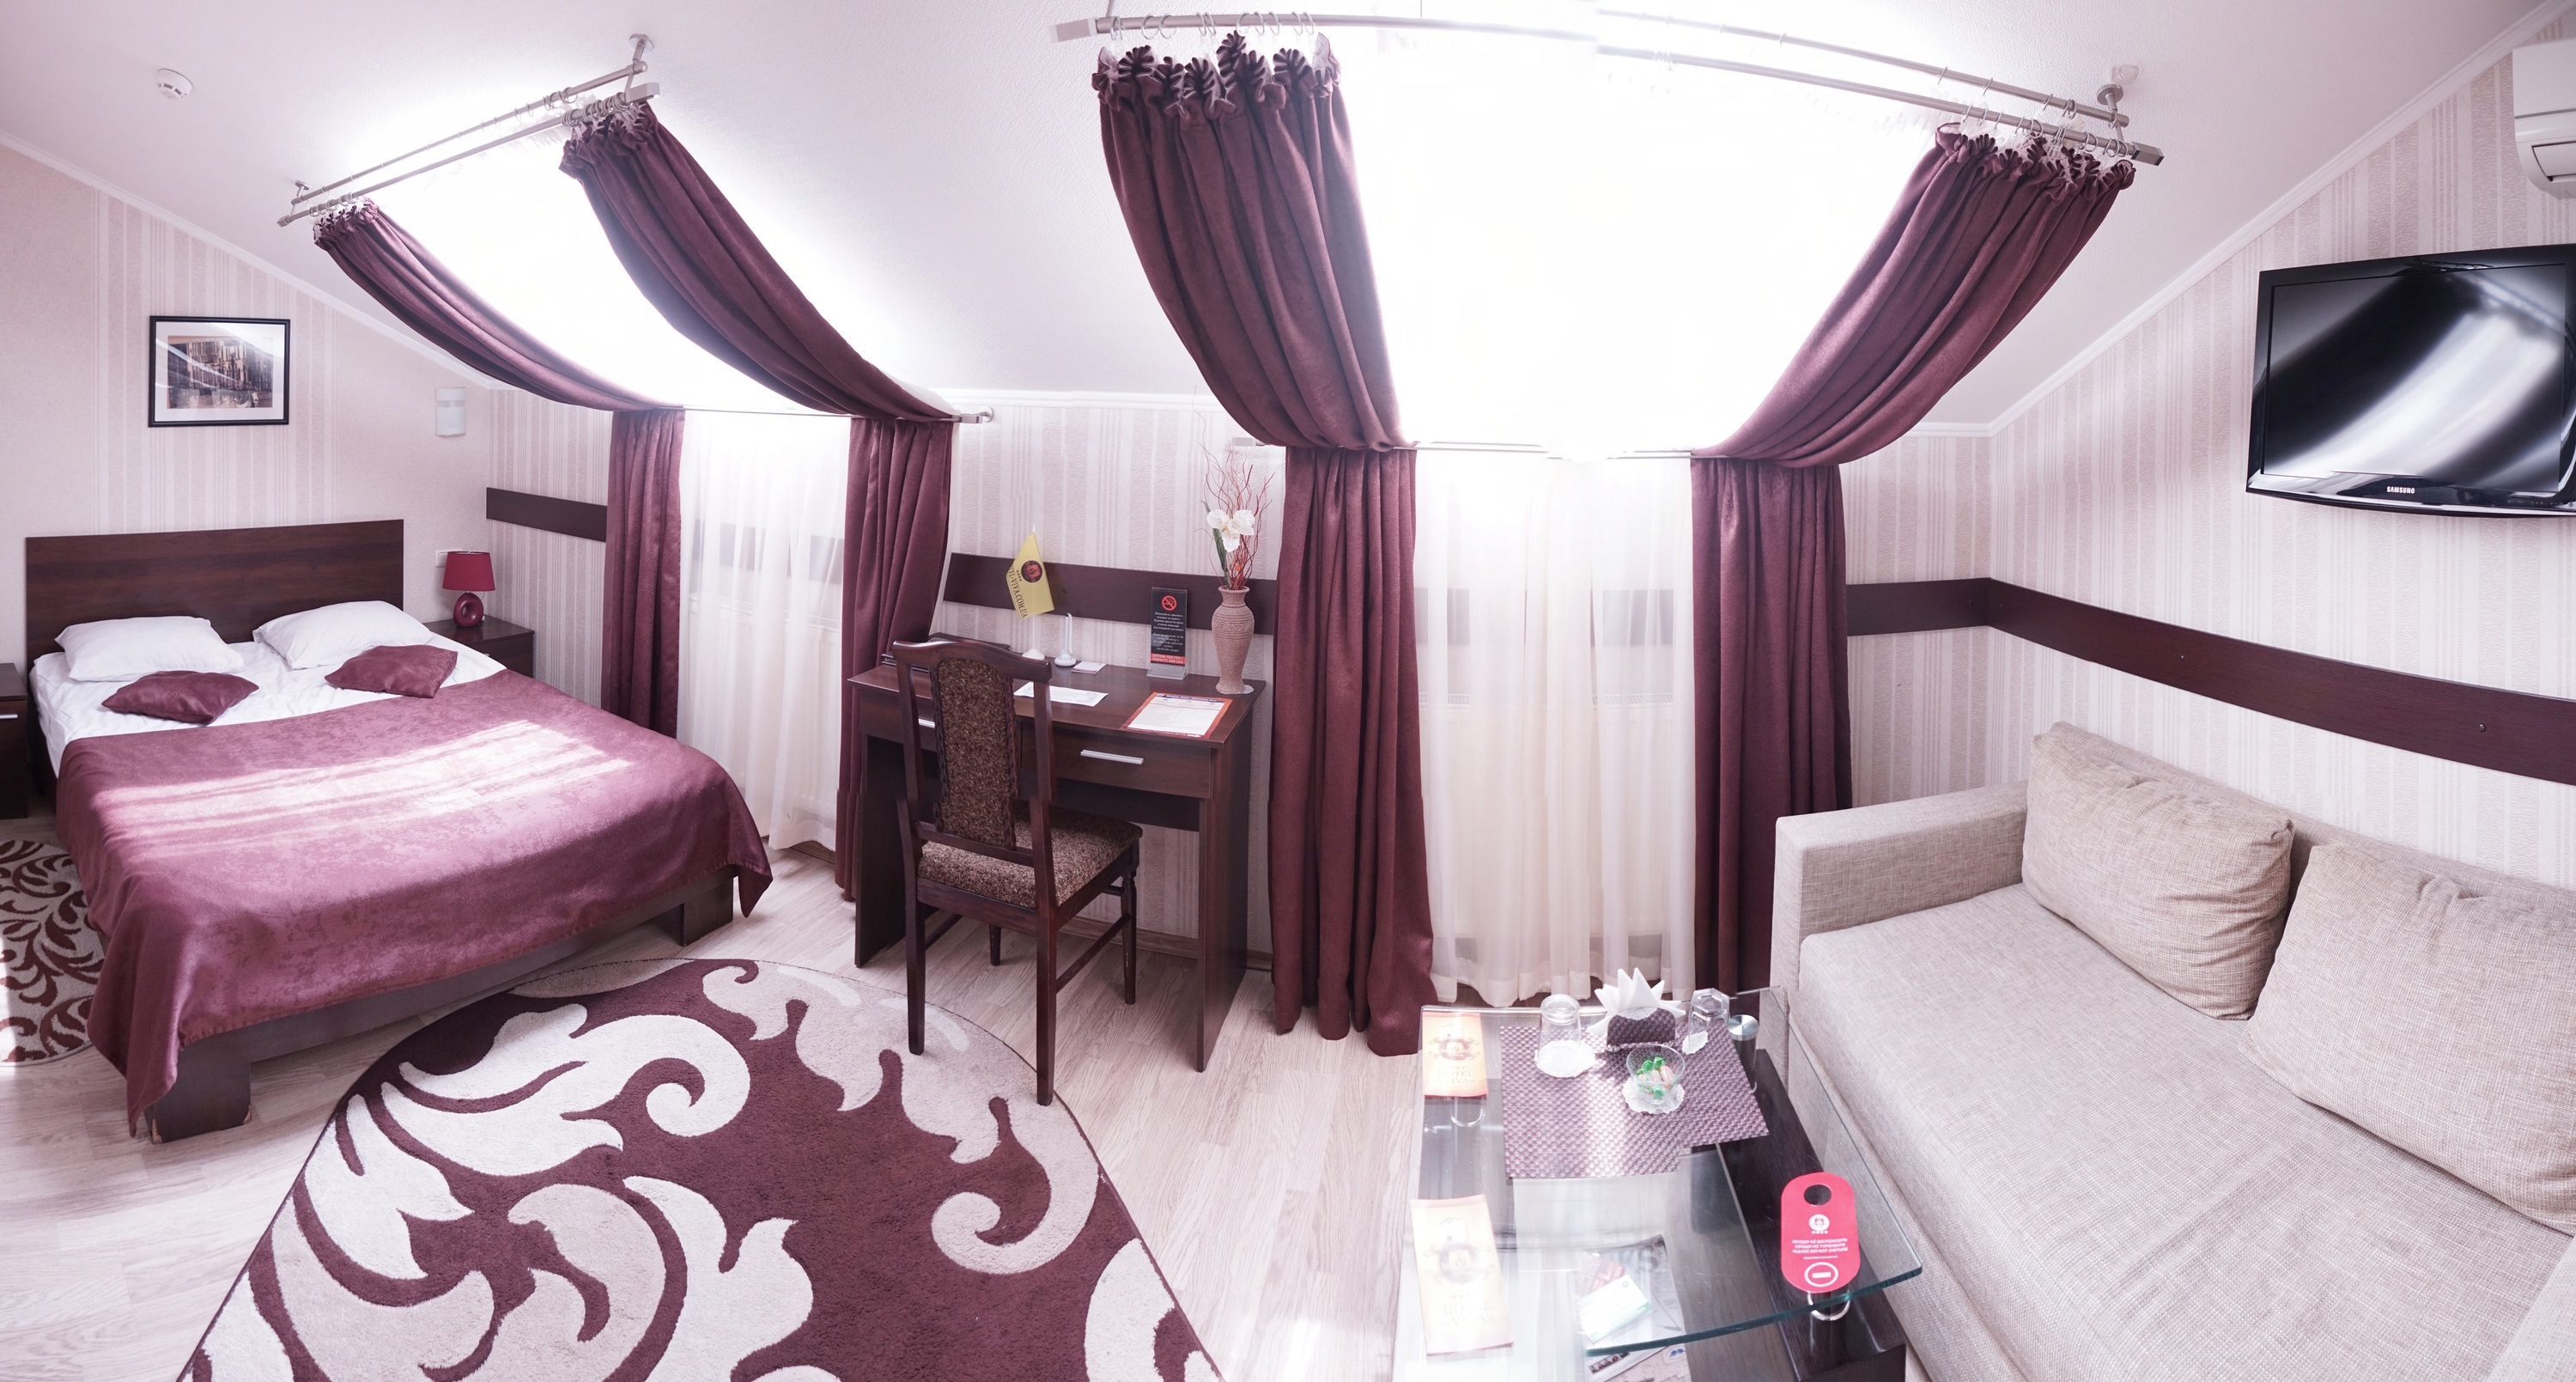 A room in the hotel Viva